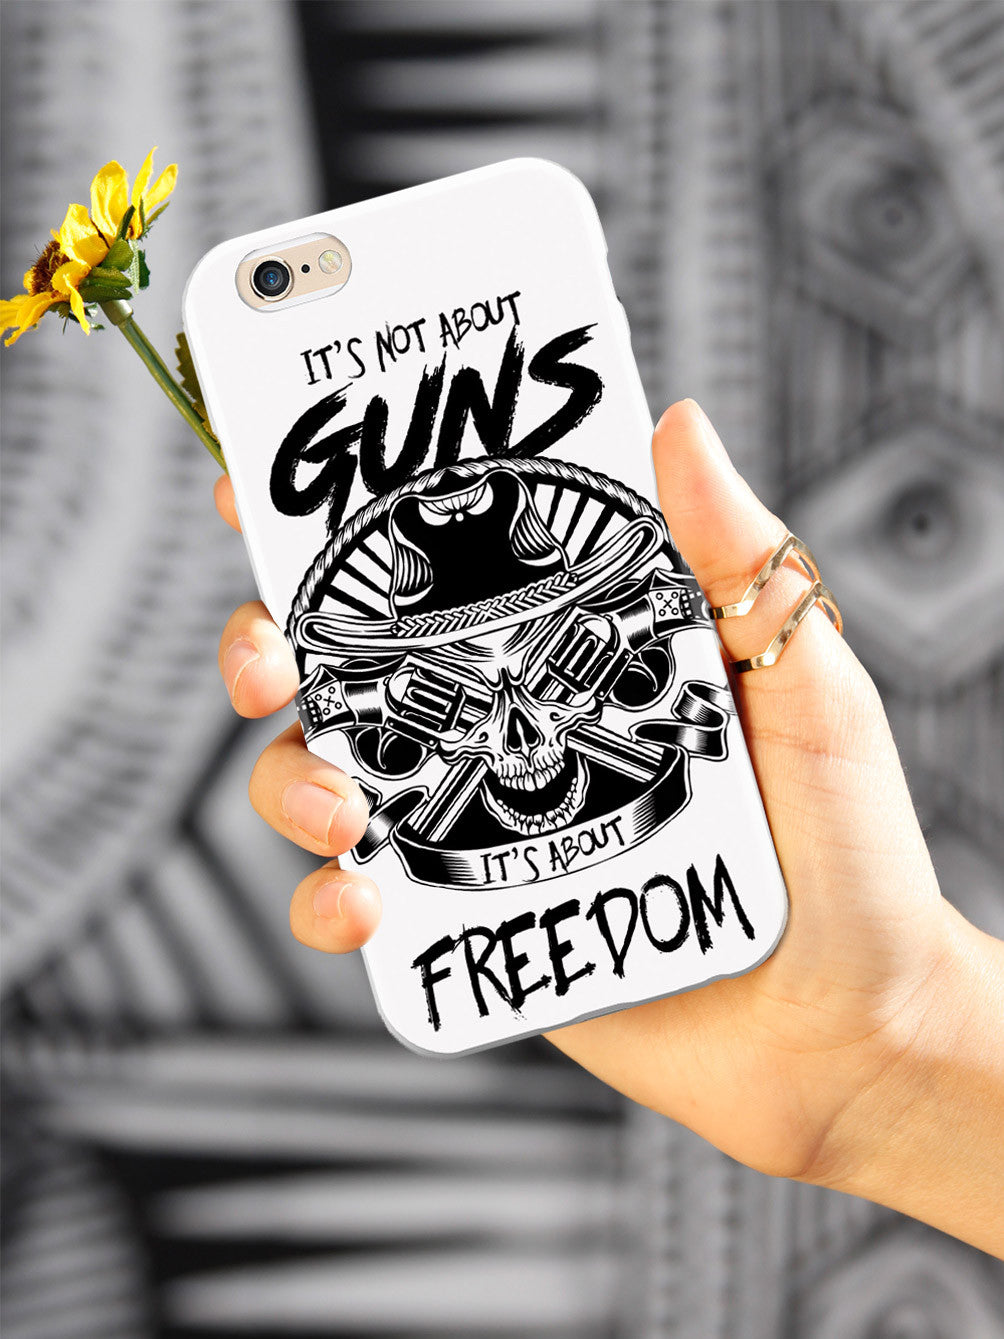 It's Not about Guns, It's About Freedom - White Case